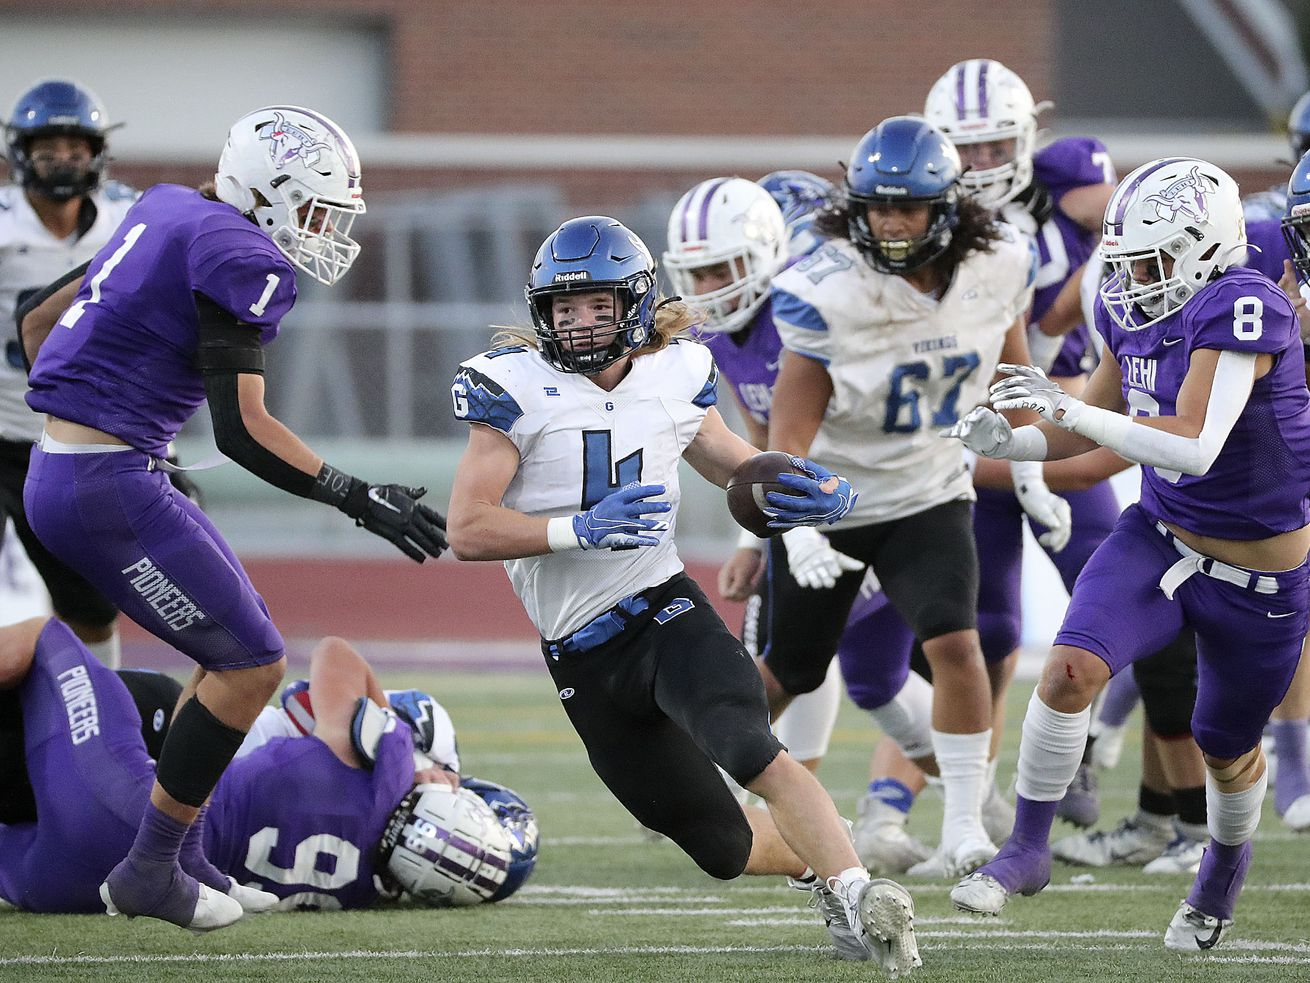 Pleasant Grove's Rex Connors runs with the ball during a football game against Lehi at Lehi High School in Lehi on Friday, Sept. 11, 2020.